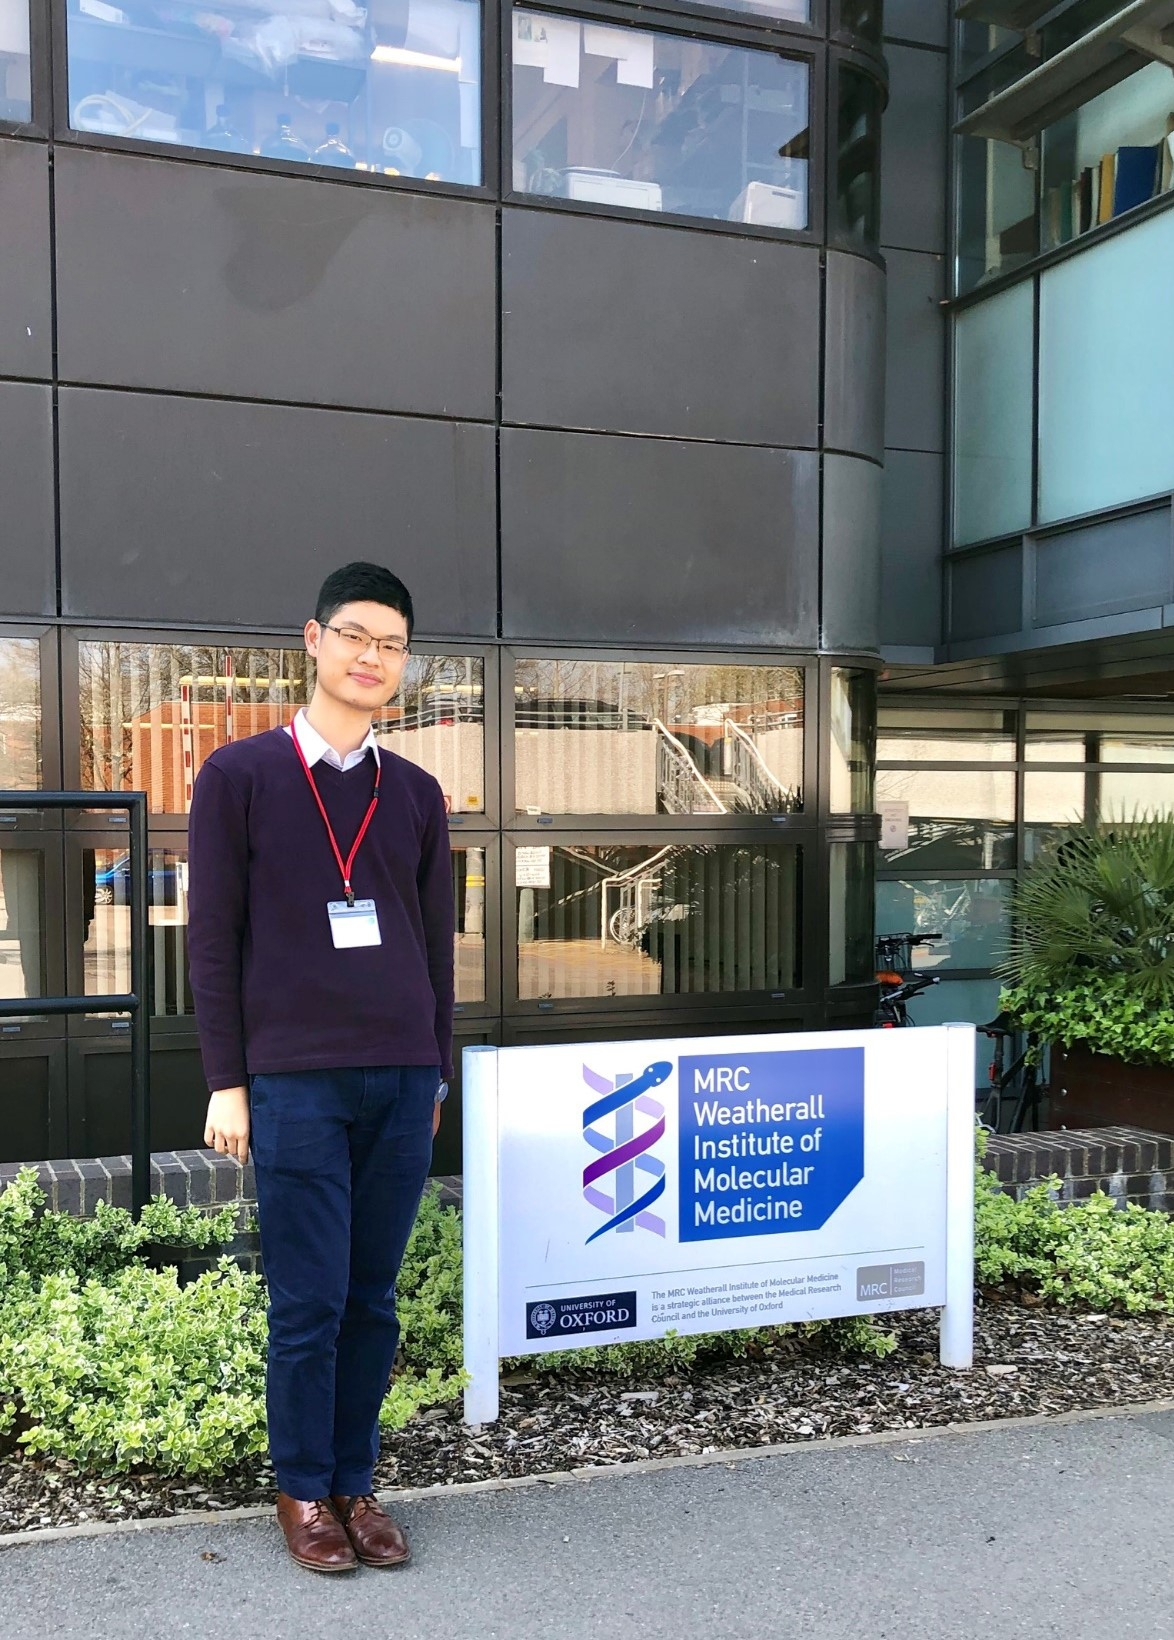 Timothy serves as a student intern at the Weatherall Institute of Molecular Medicine, The University of Oxford